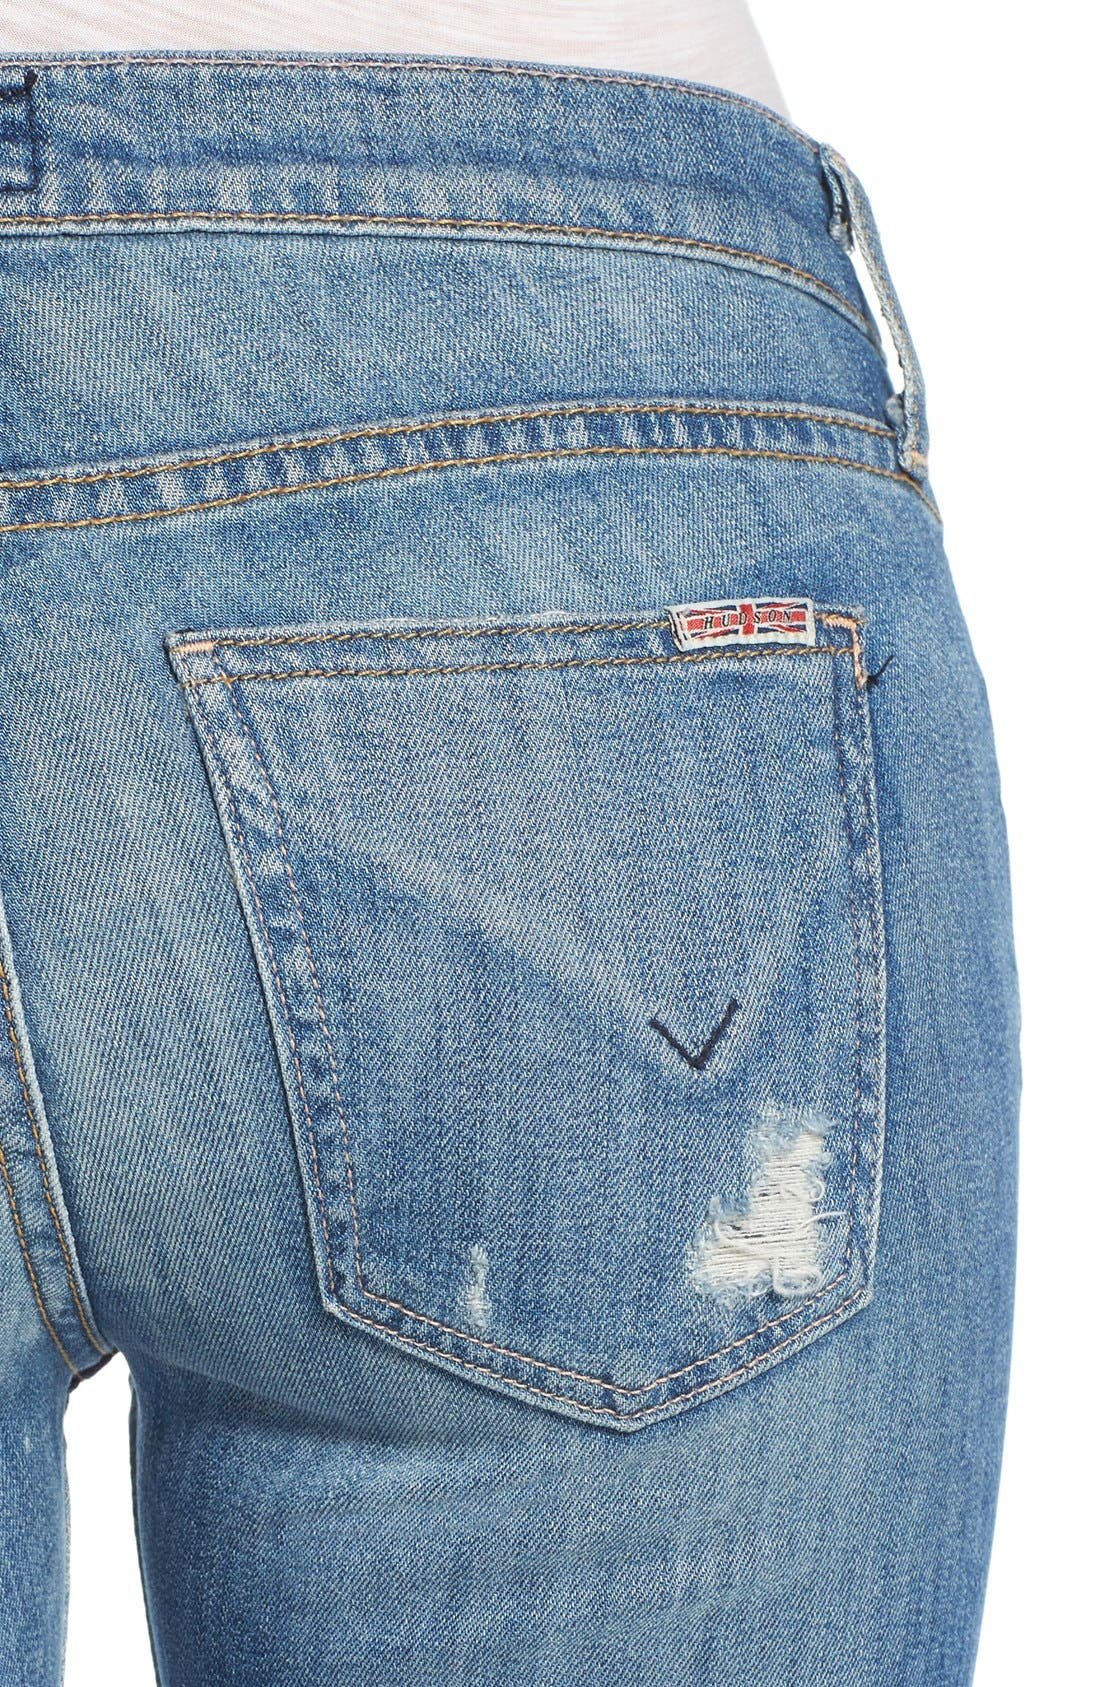 'Muse' Cuff Crop Jeans,                             Alternate thumbnail 3, color,                             400